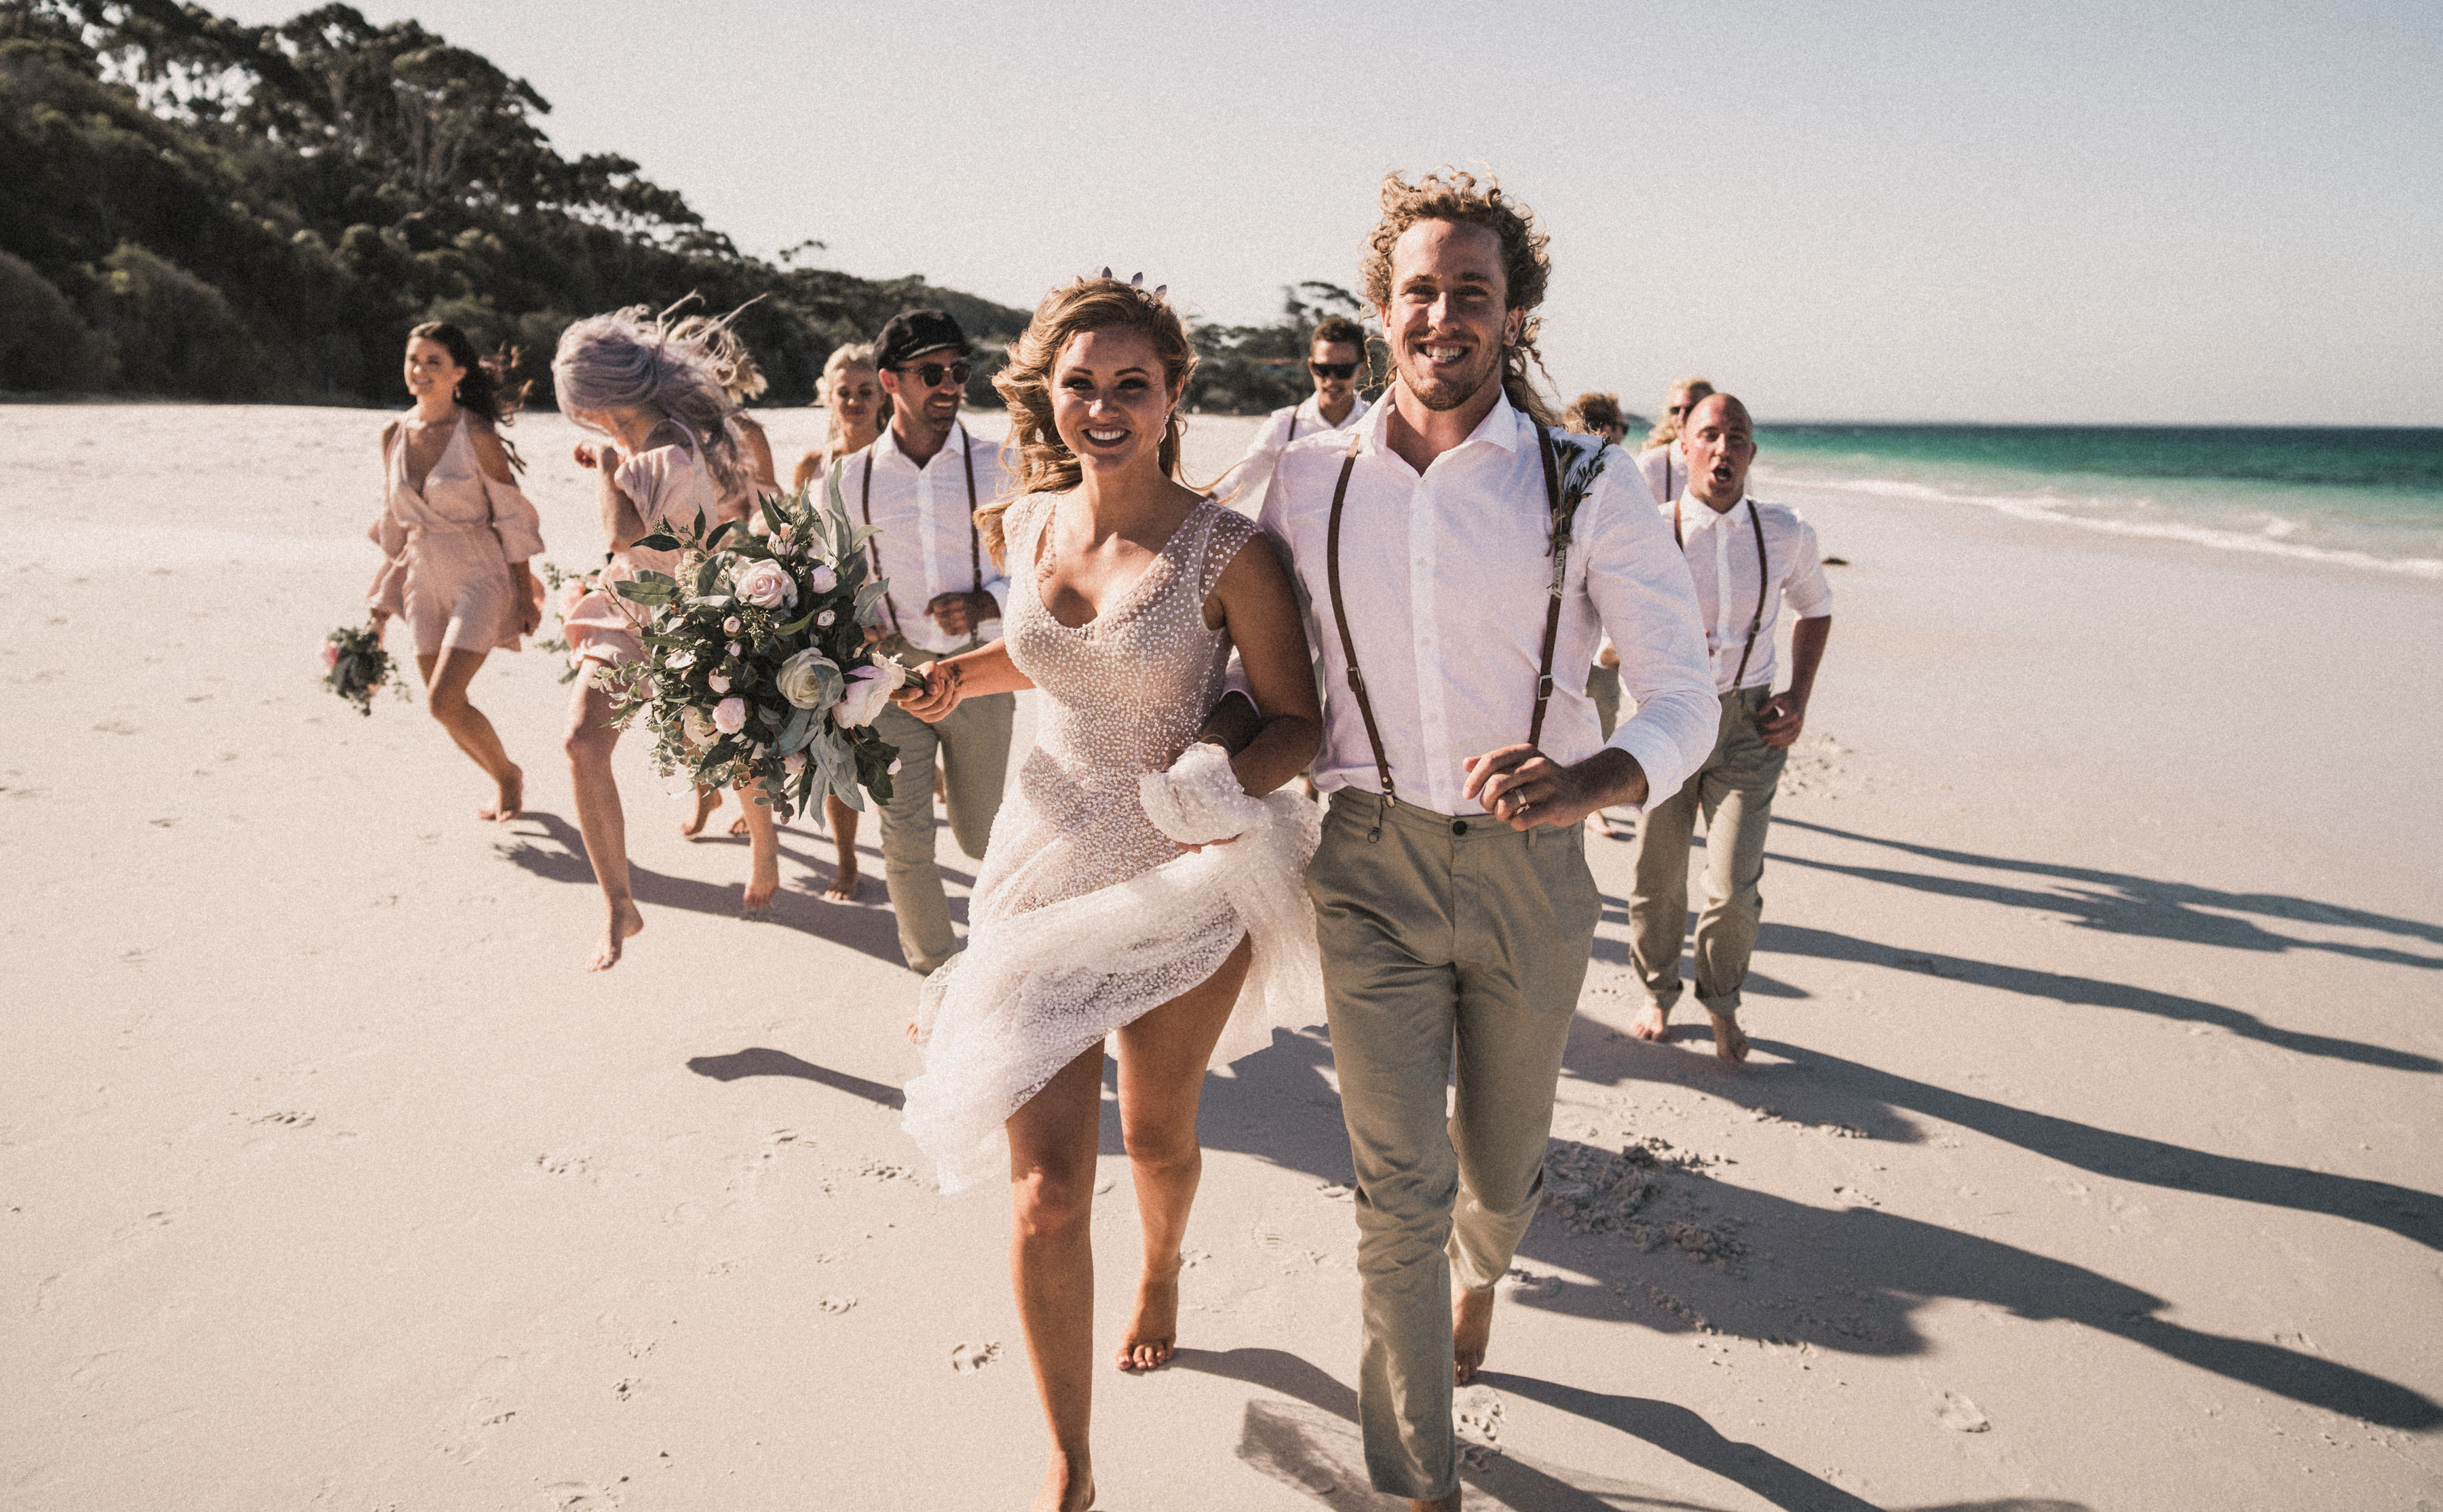 Australia Wedding, Summer Wedding, Coachella Wedding, Boho Wedding